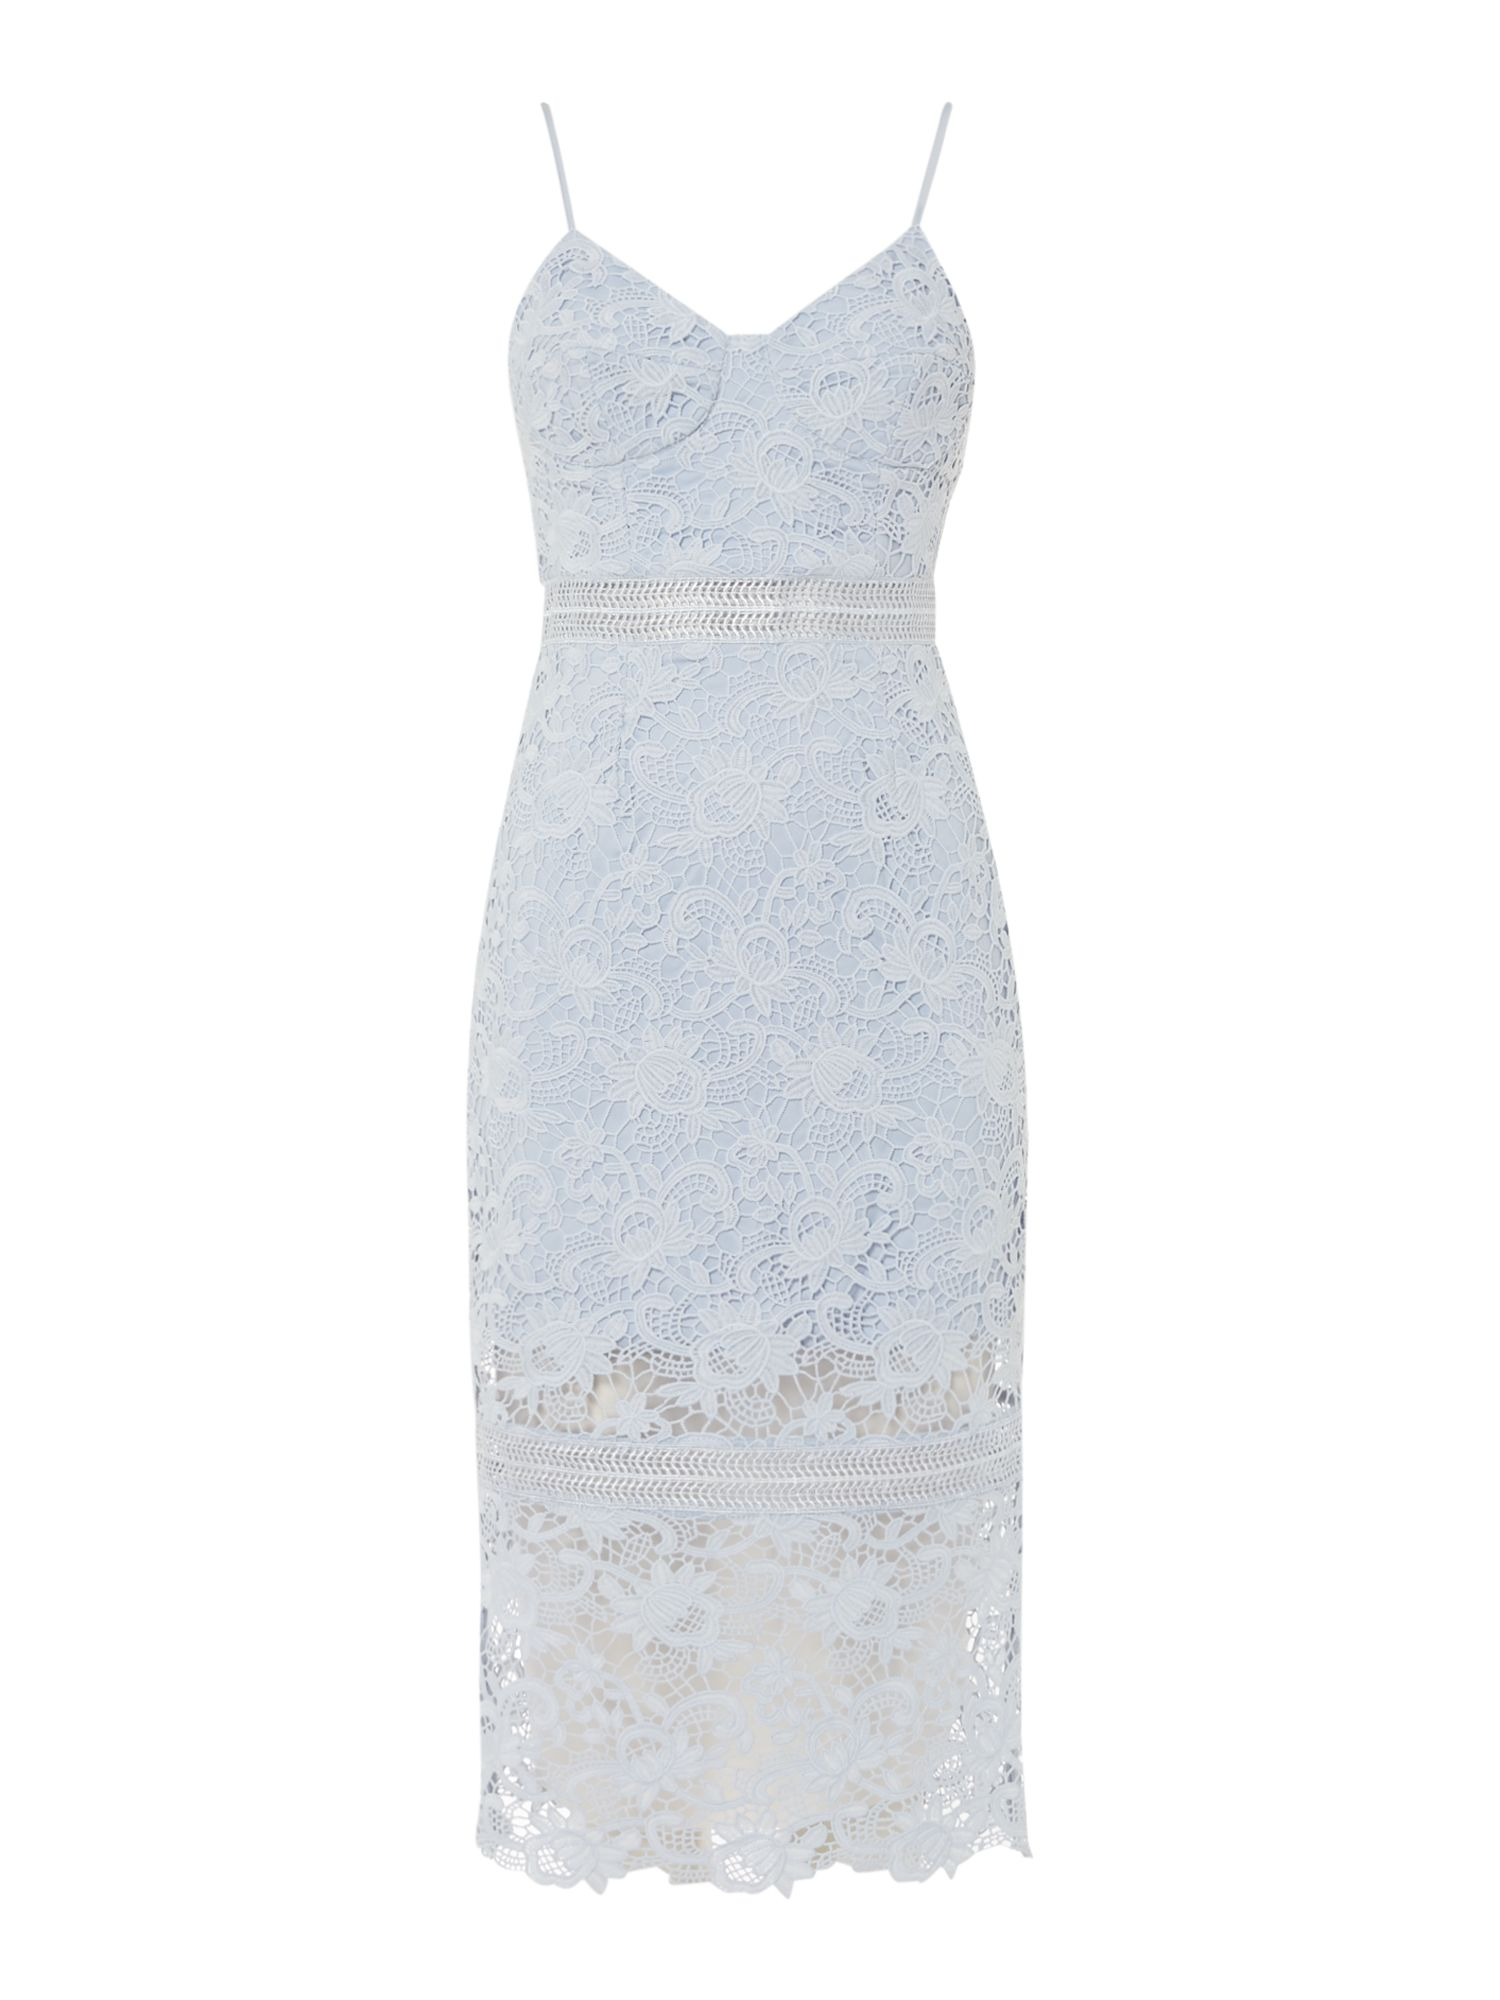 Bardot Strappy Lace Bodycon Dress, Blue